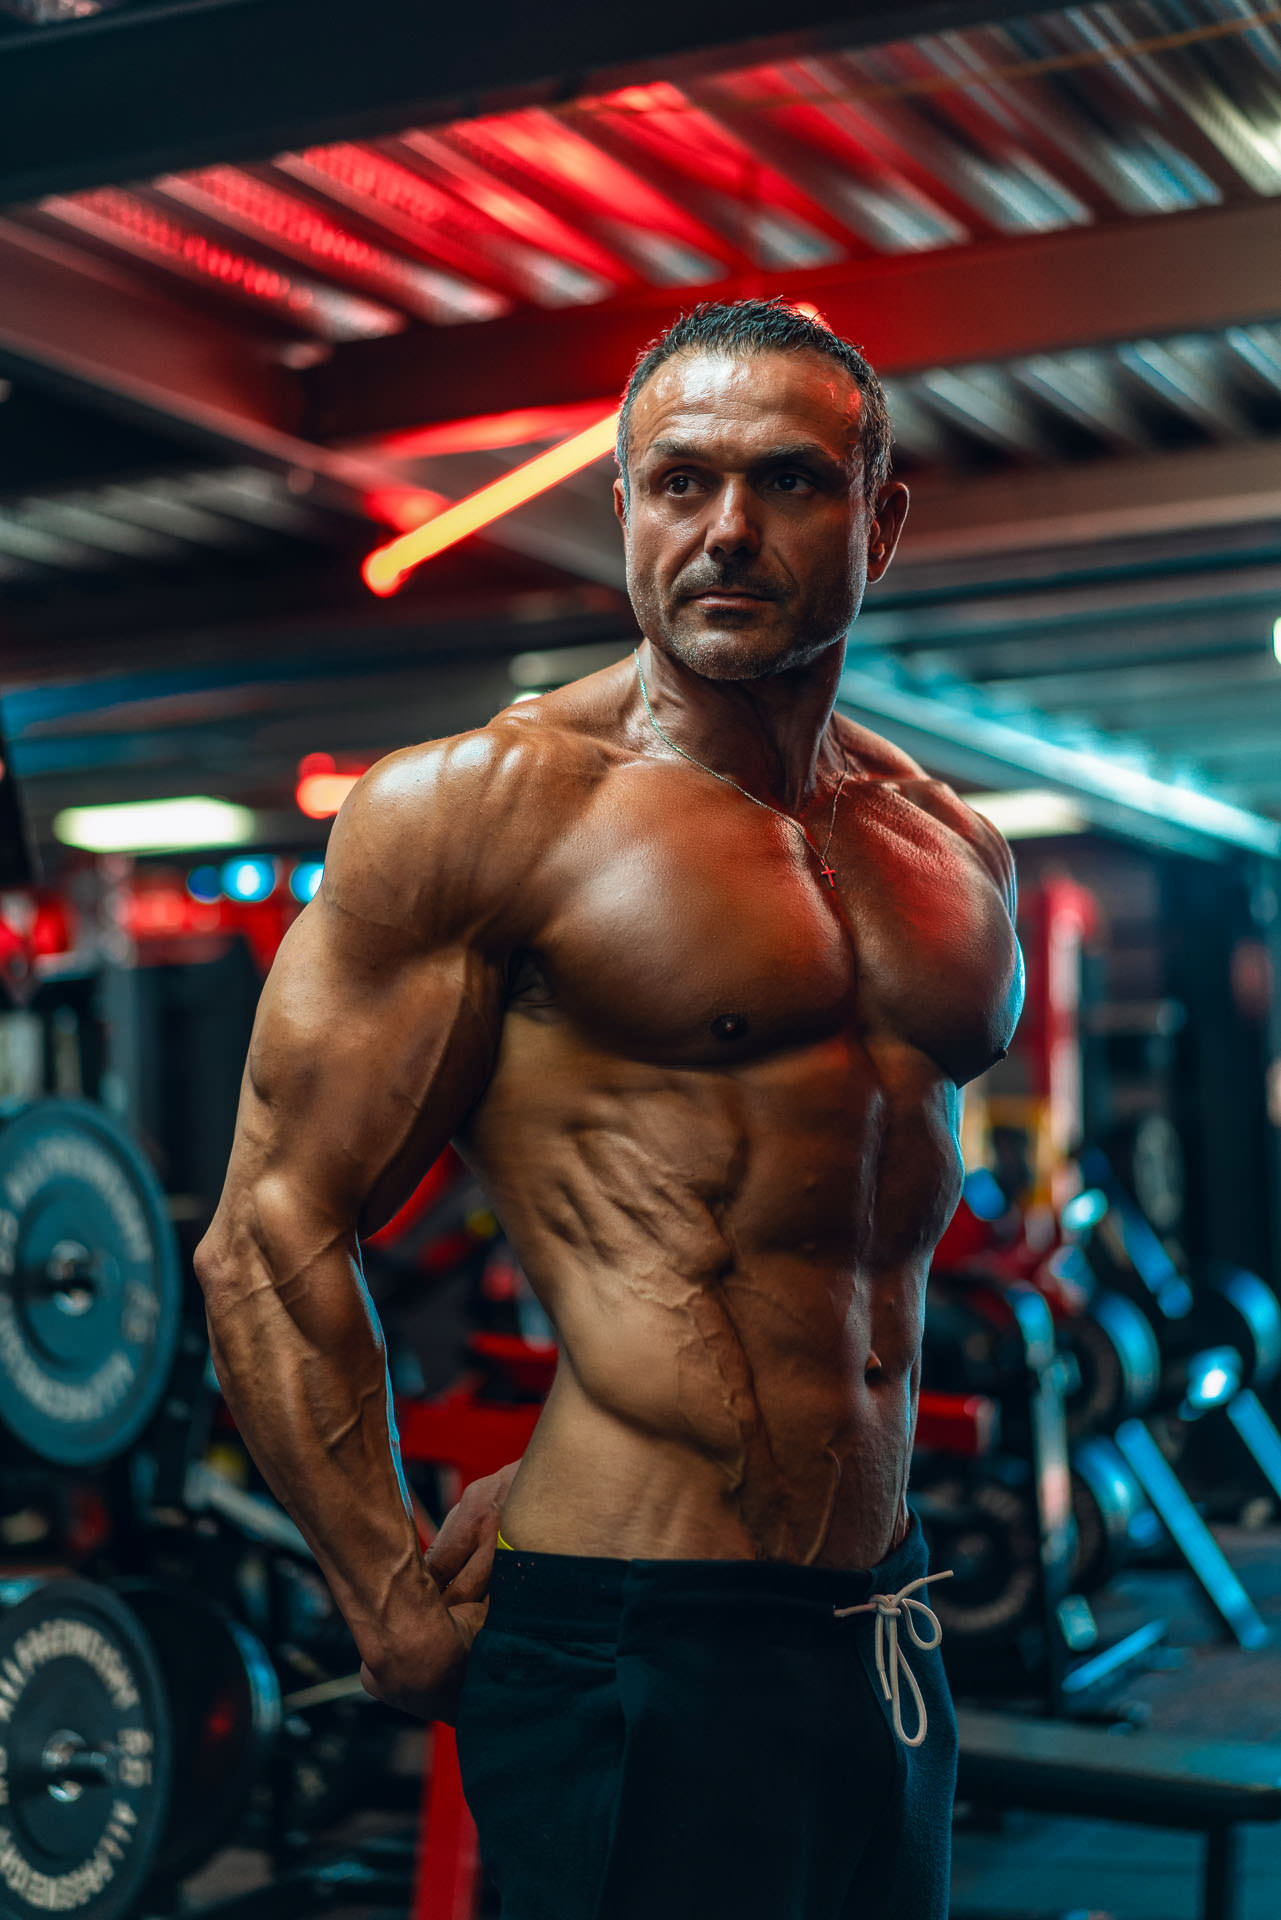 2020-03-15 - Enzo - Muscle Factory - 01569 - 1920px